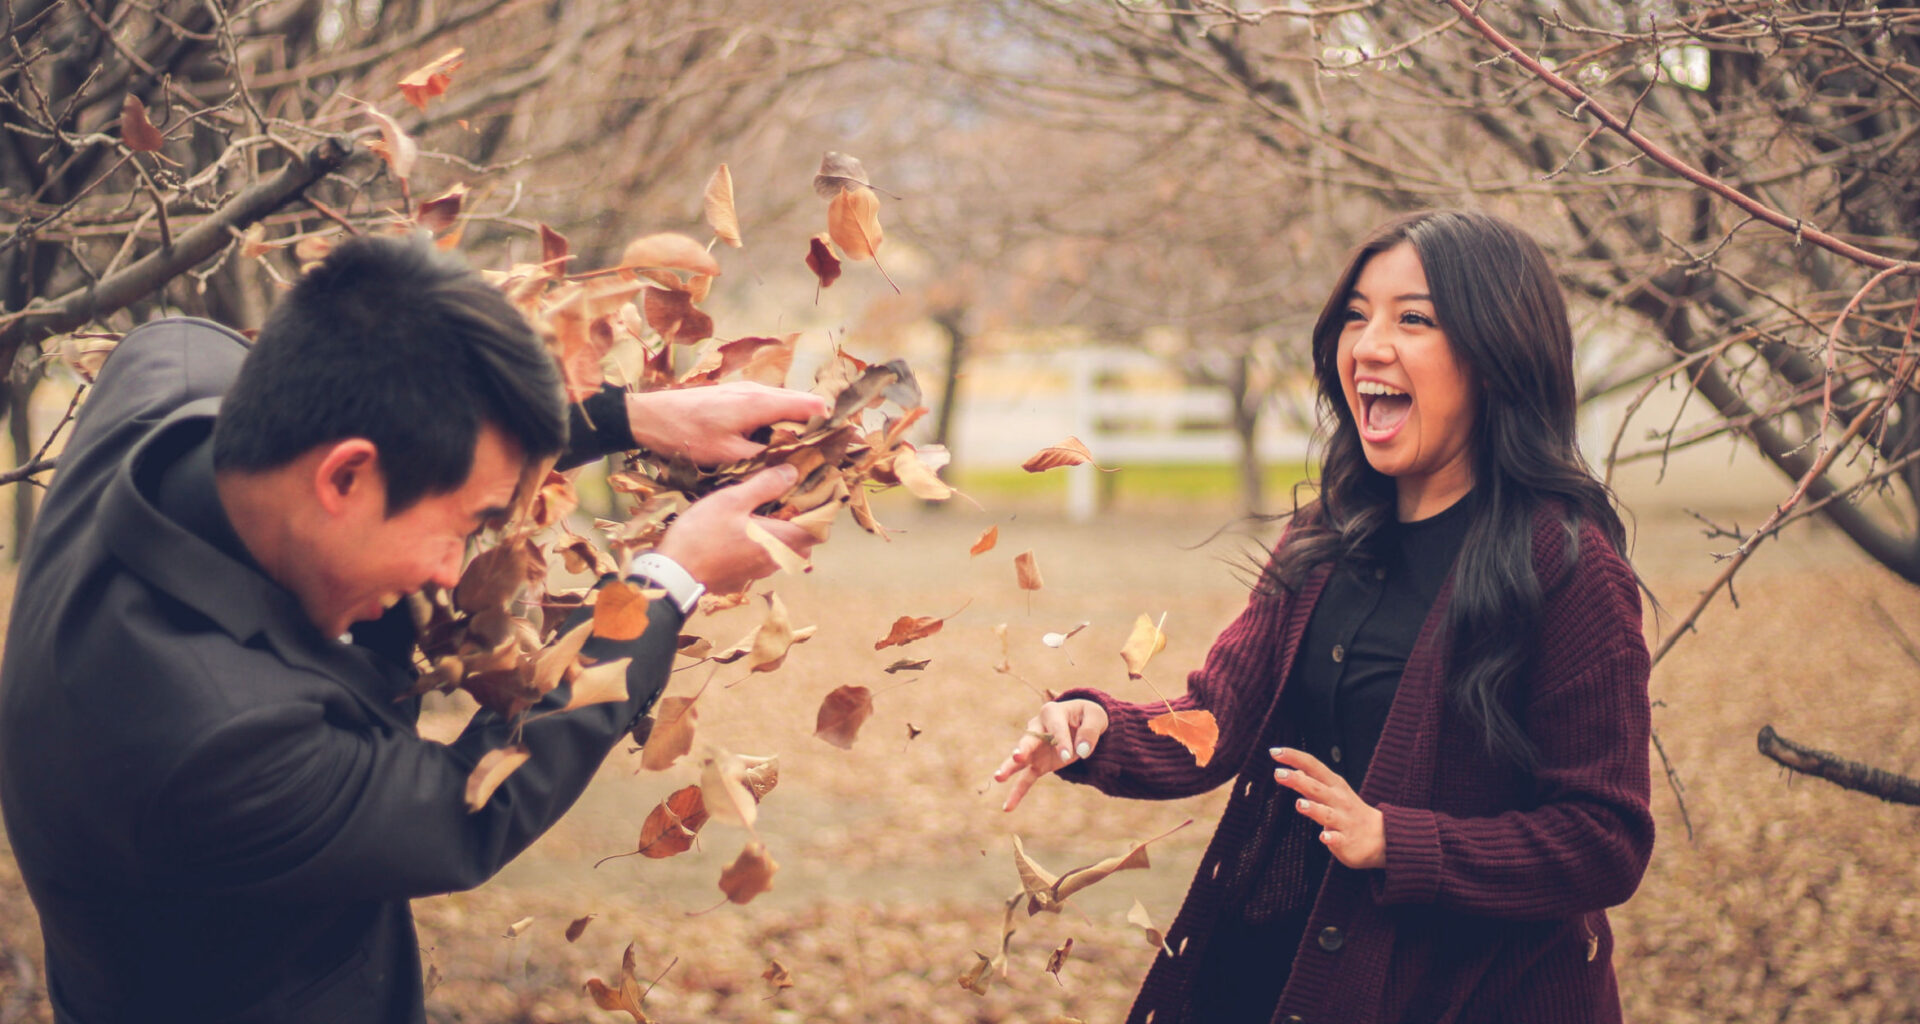 male and female high school teens tossing fall leaves at each other